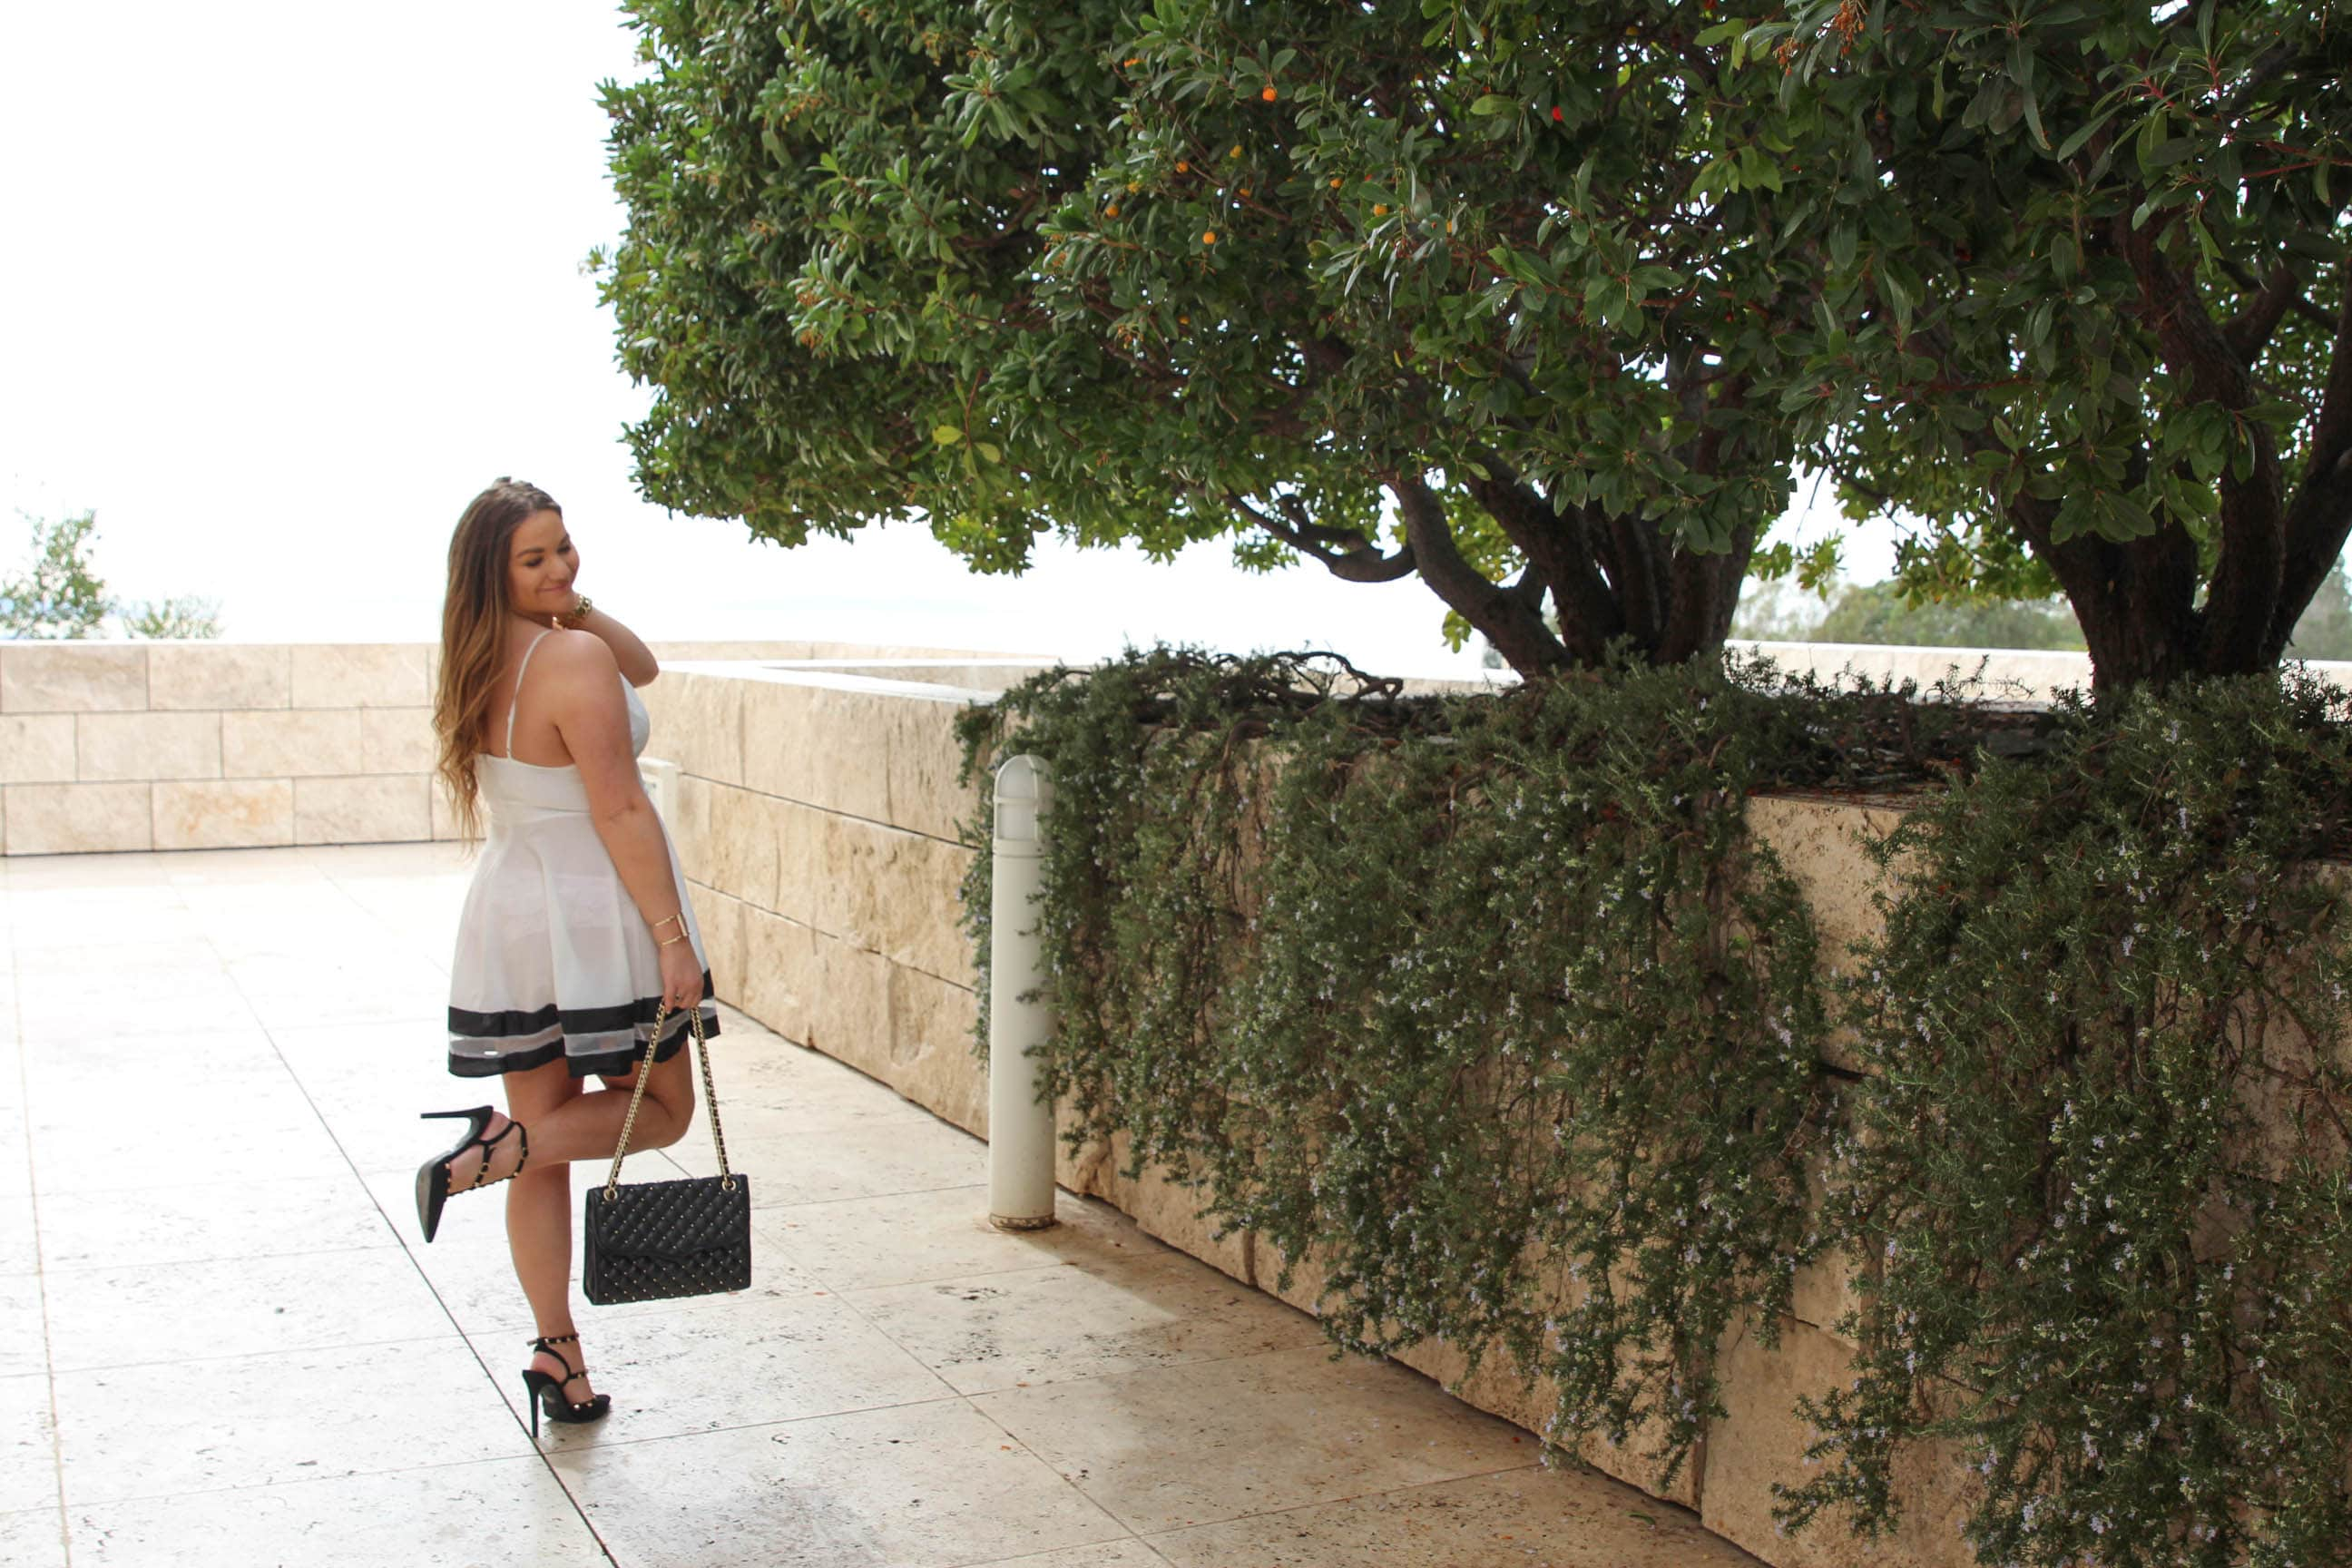 missyonmadison, missyonmadison instagram, missyonmadison blog, la blogger, fashion blogger, style blogger, style diaries, bloglovin, white skater dress, white a line dress, rockstud heels, rockstud pumps, black rockstud pumps, rebecca minkoff bag, rebecca minkoff affair bag, valentines day style, vday style, vday 2018, valentines day 2018, what to wear for valentines day, the getty, date night style, date night looks, rockstud look alikes, valentino rockstud pumps,